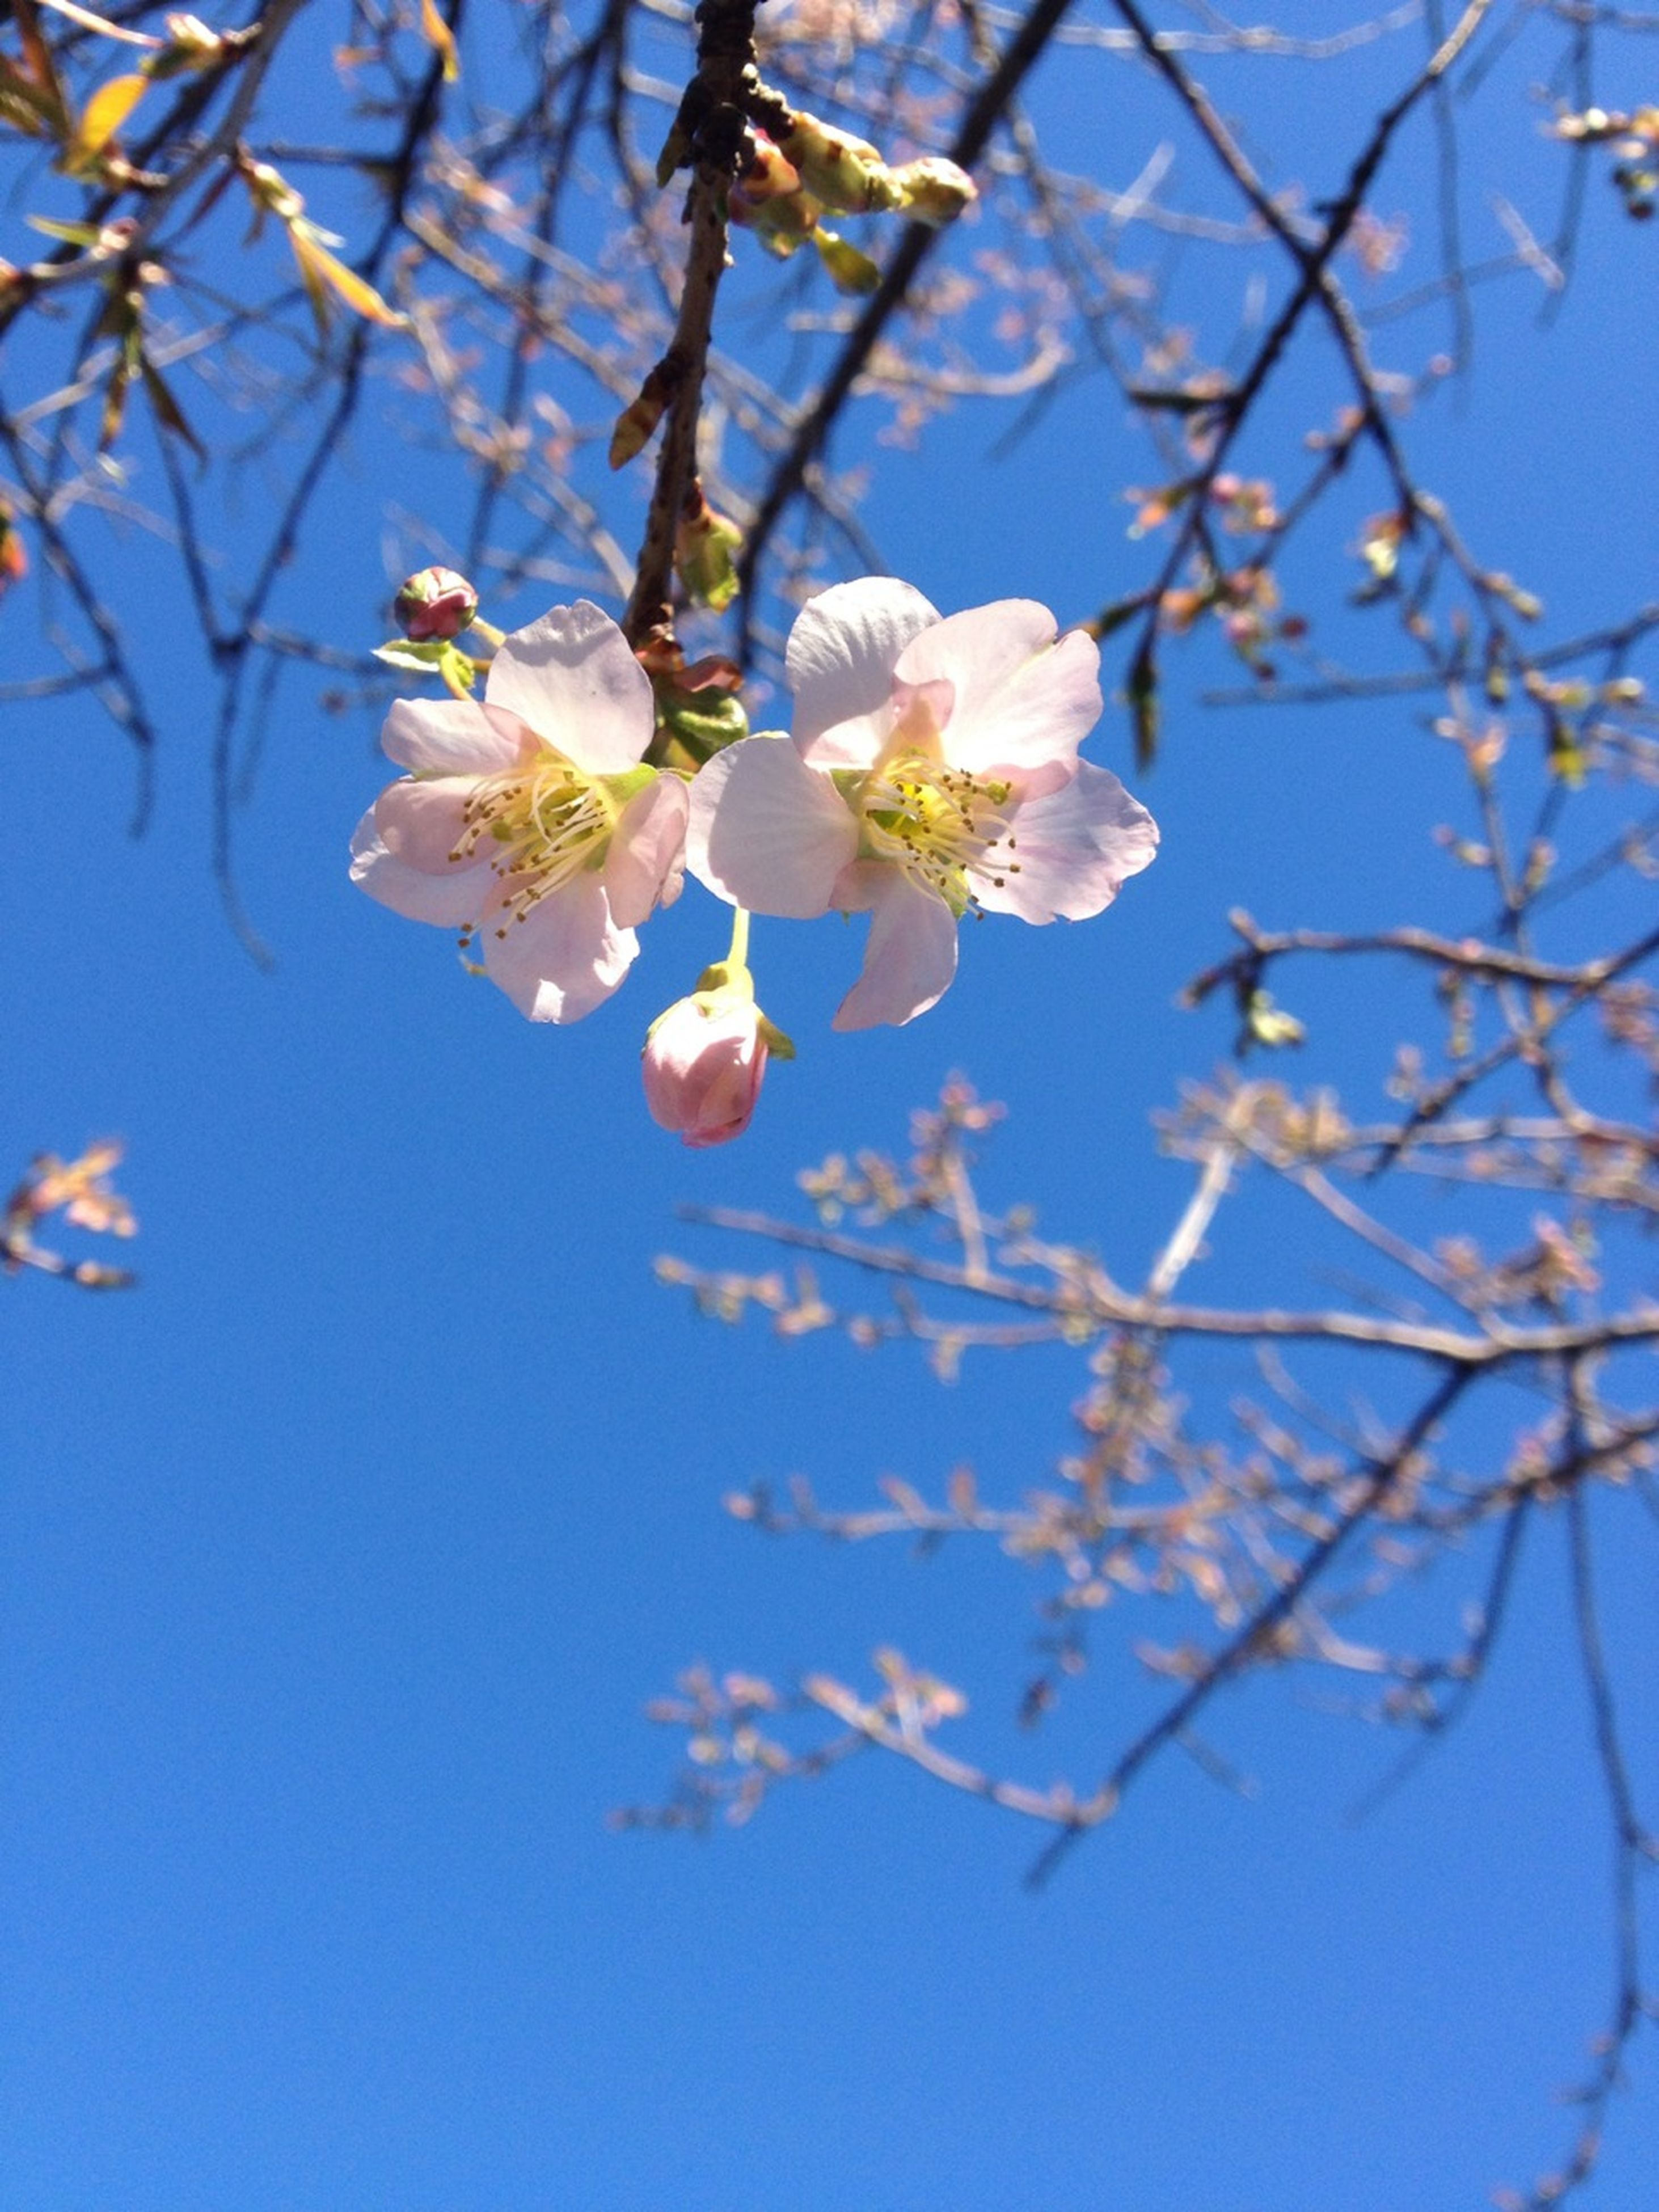 flower, branch, growth, freshness, fragility, tree, beauty in nature, blue, low angle view, nature, blossom, petal, blooming, white color, cherry blossom, twig, in bloom, close-up, sky, day